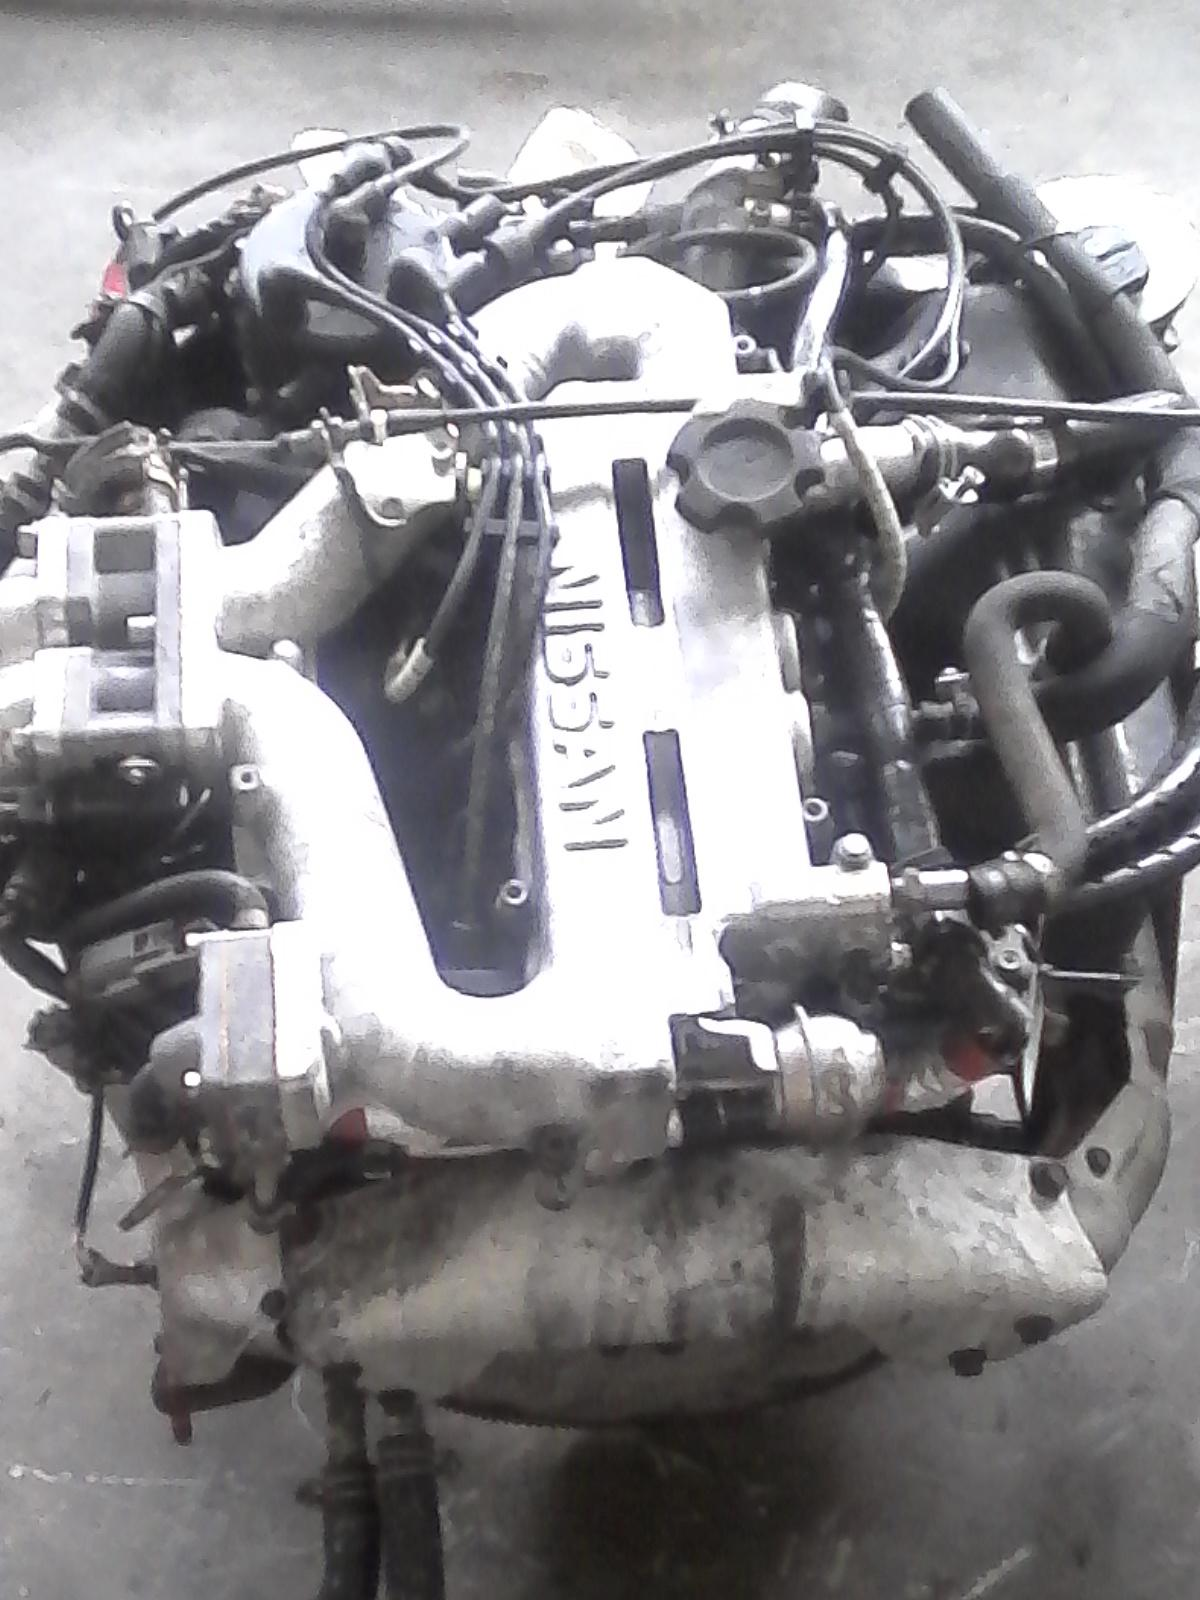 nissan hardbody vg30 engine for sale johannesburg. Black Bedroom Furniture Sets. Home Design Ideas